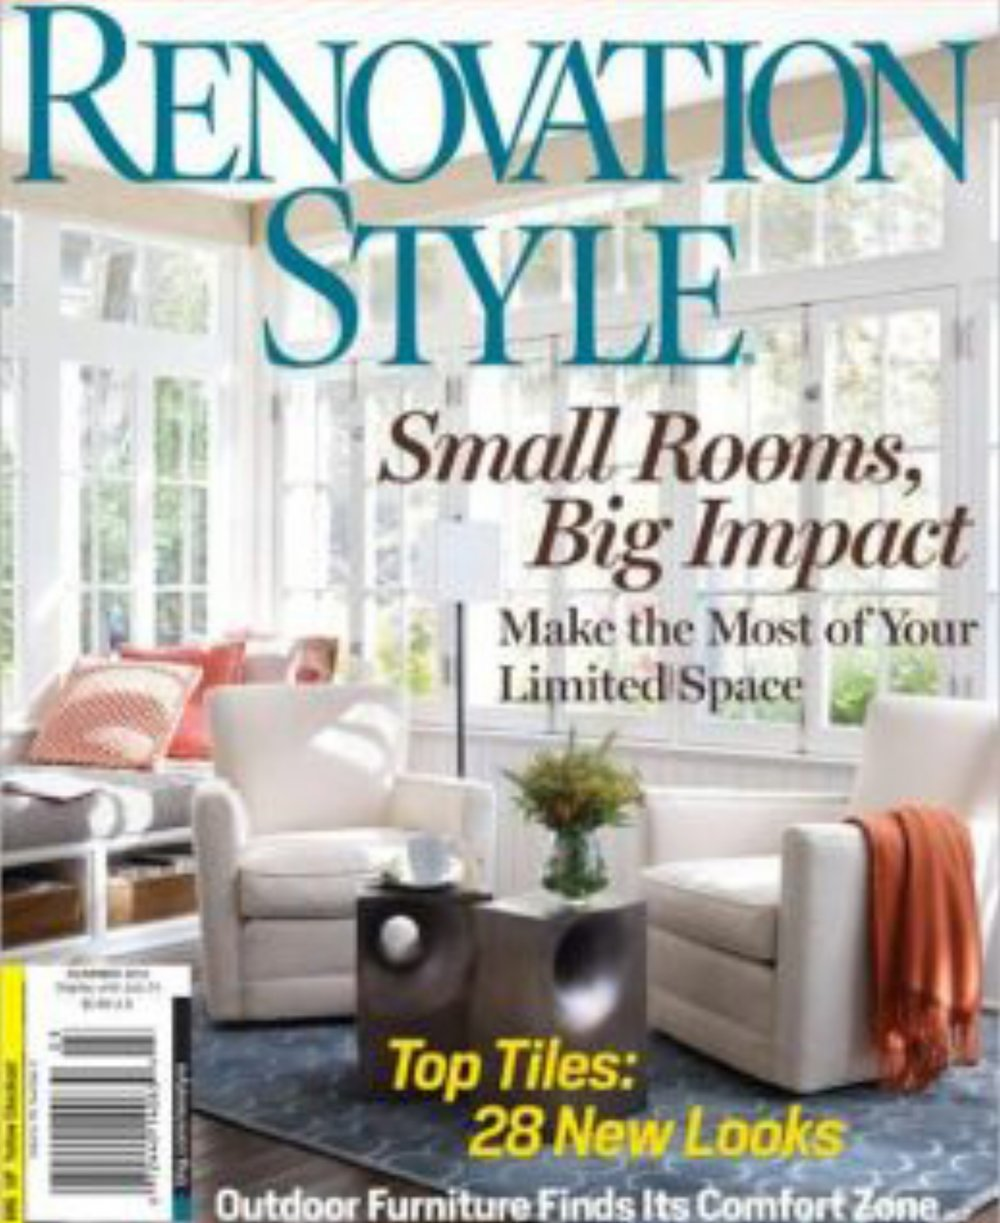 renovation style summer 2012 cover.jpg